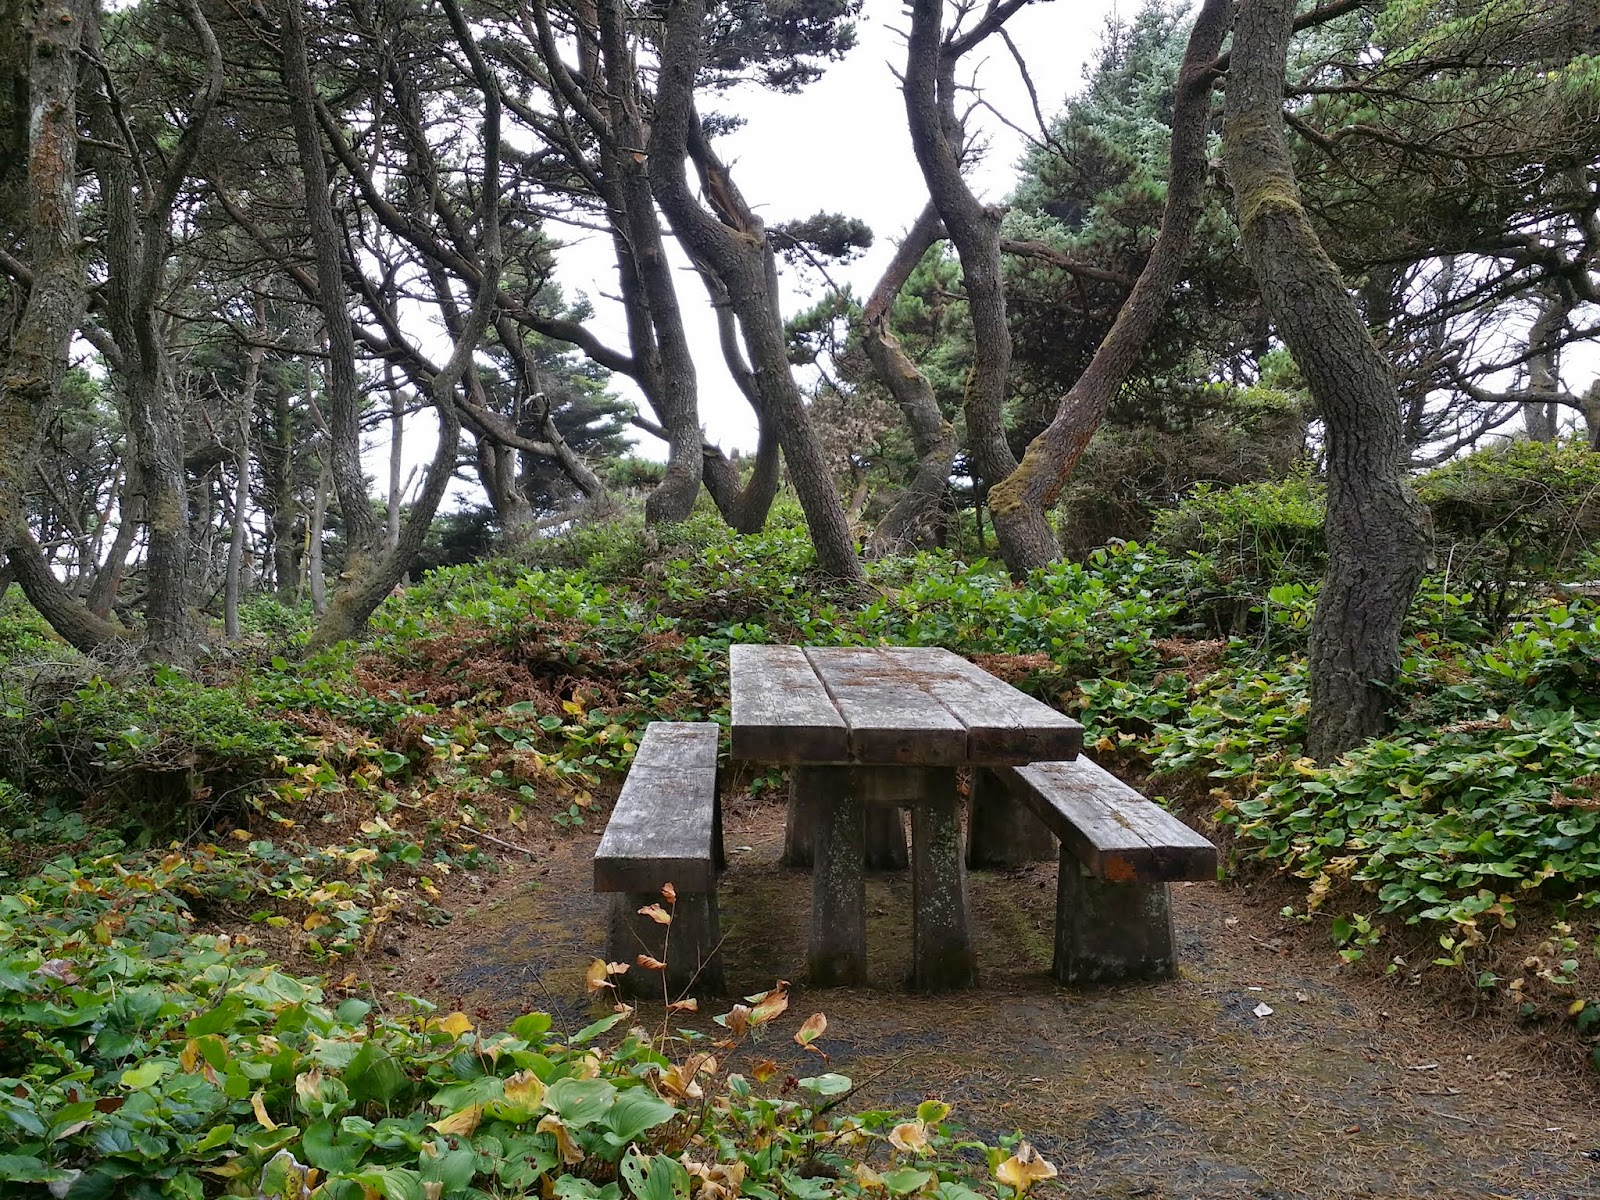 picnic area at Seal Rock State Recreation Site